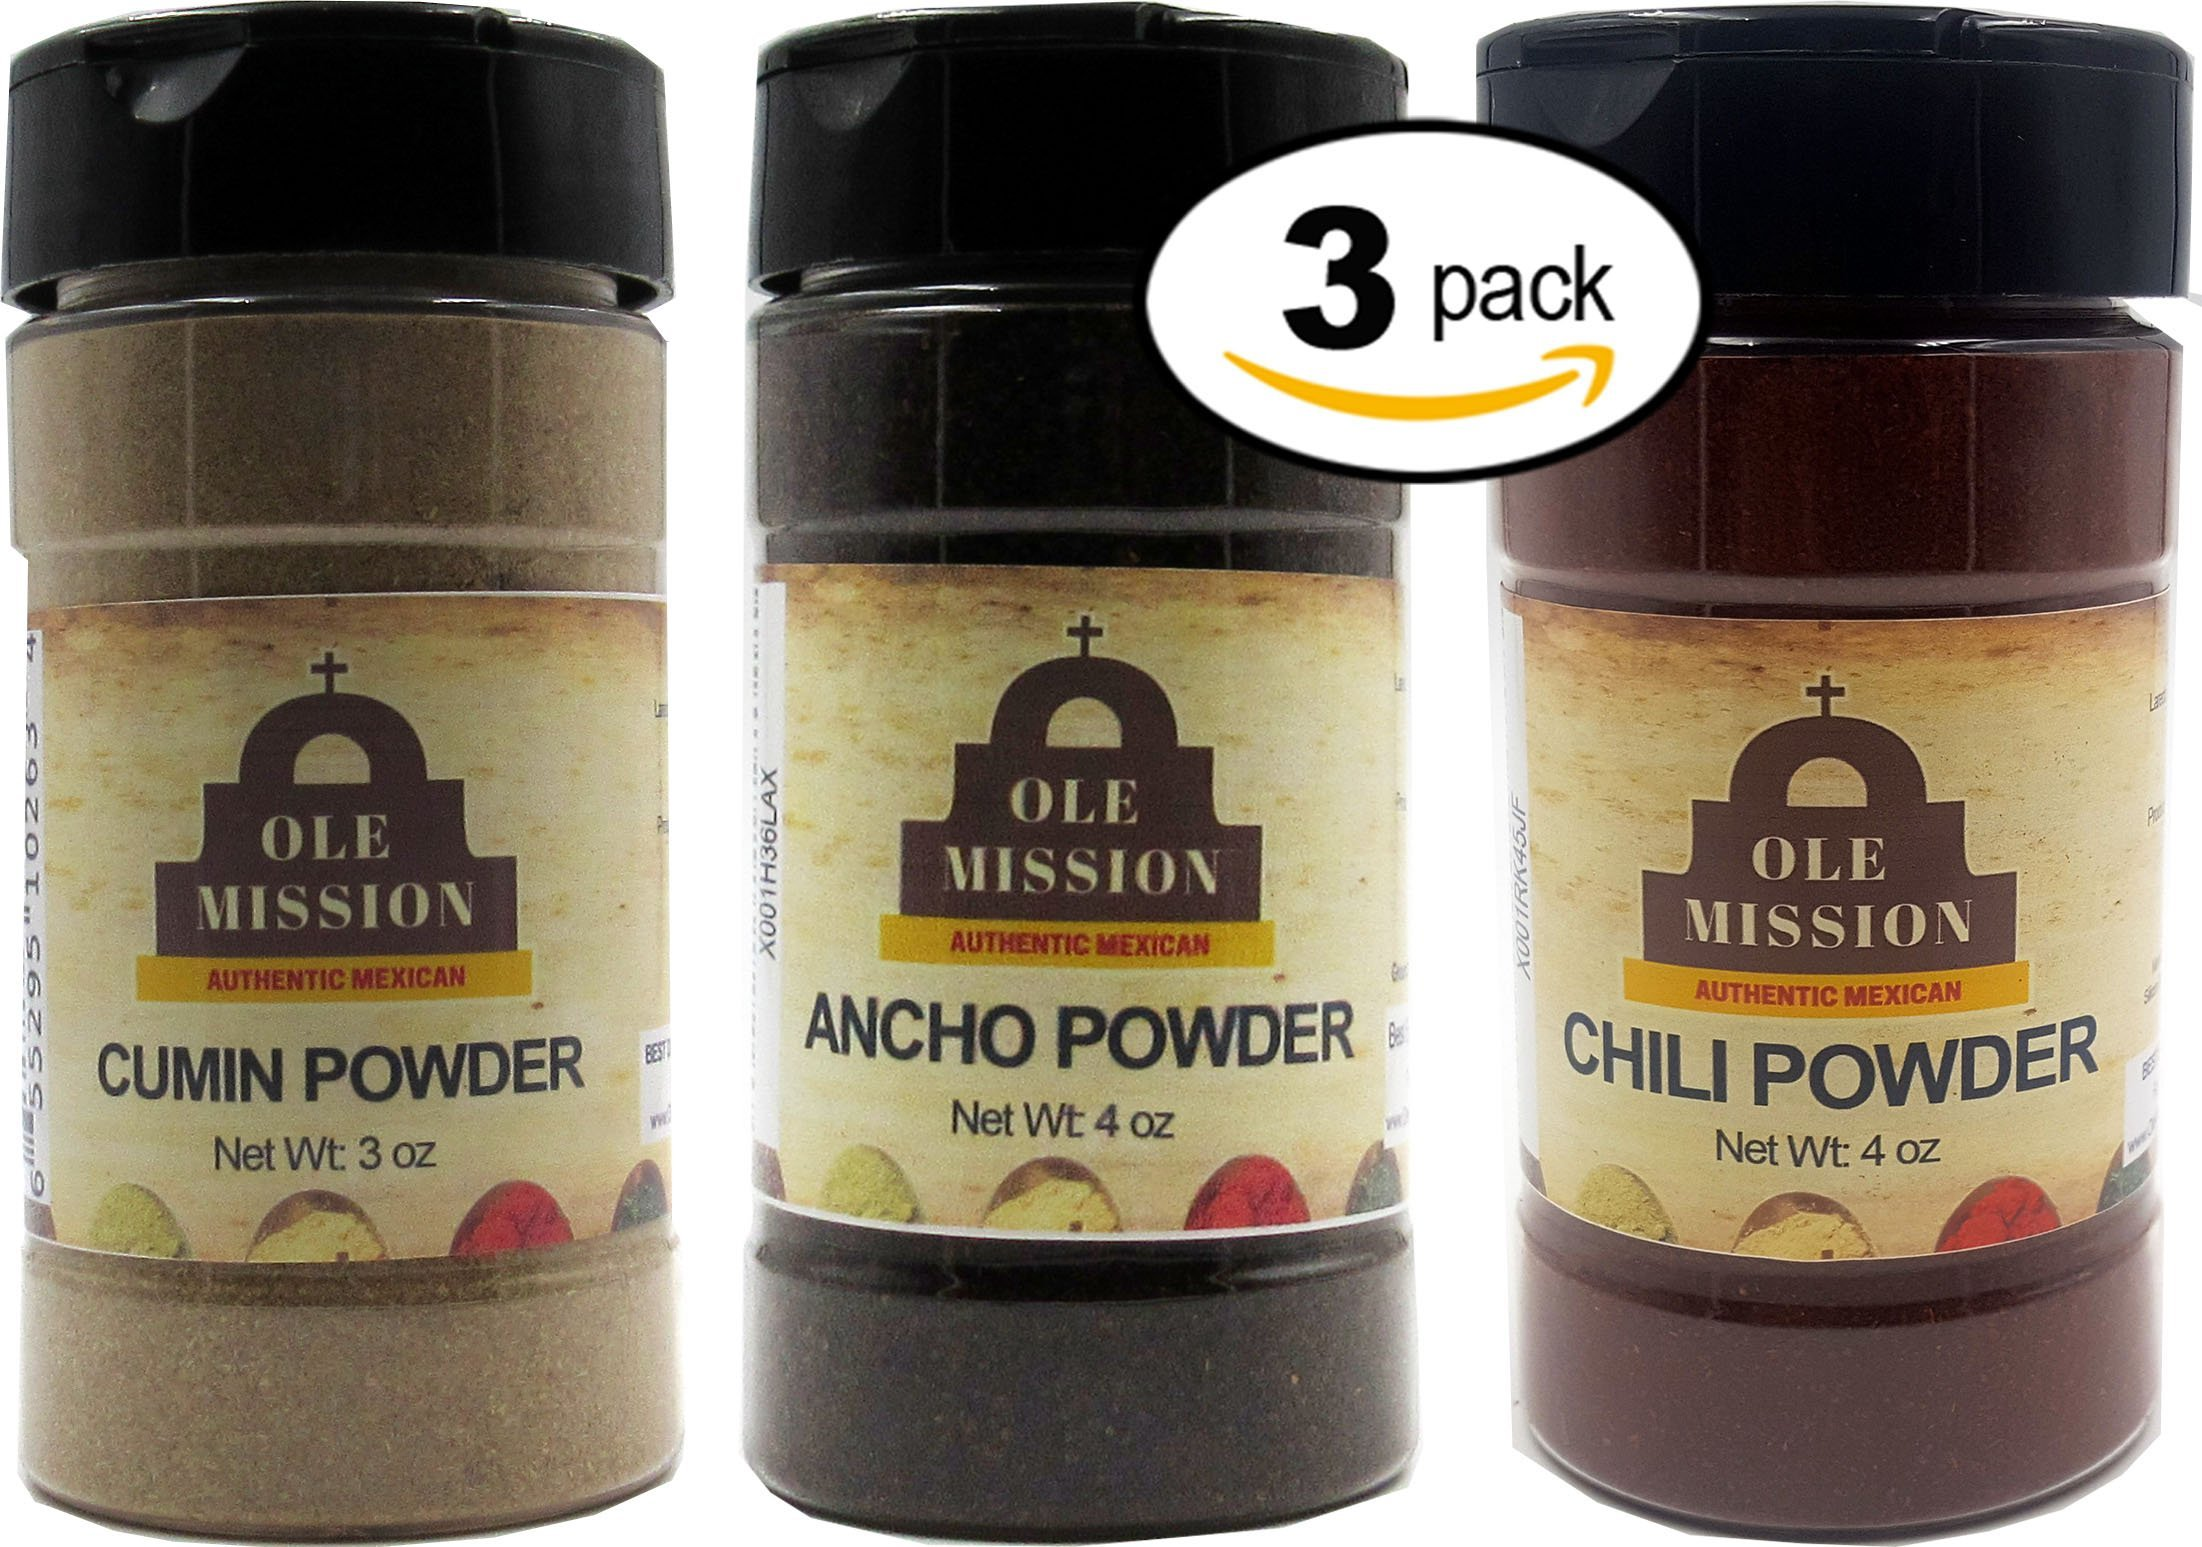 Cumin, Ancho, Chili Powder 3 Pack Mexican Cooking Bundle - Great For Tacos, Rubs, Pork, Mole, Fajitas, Menudo, Chorizo by Ole Mission